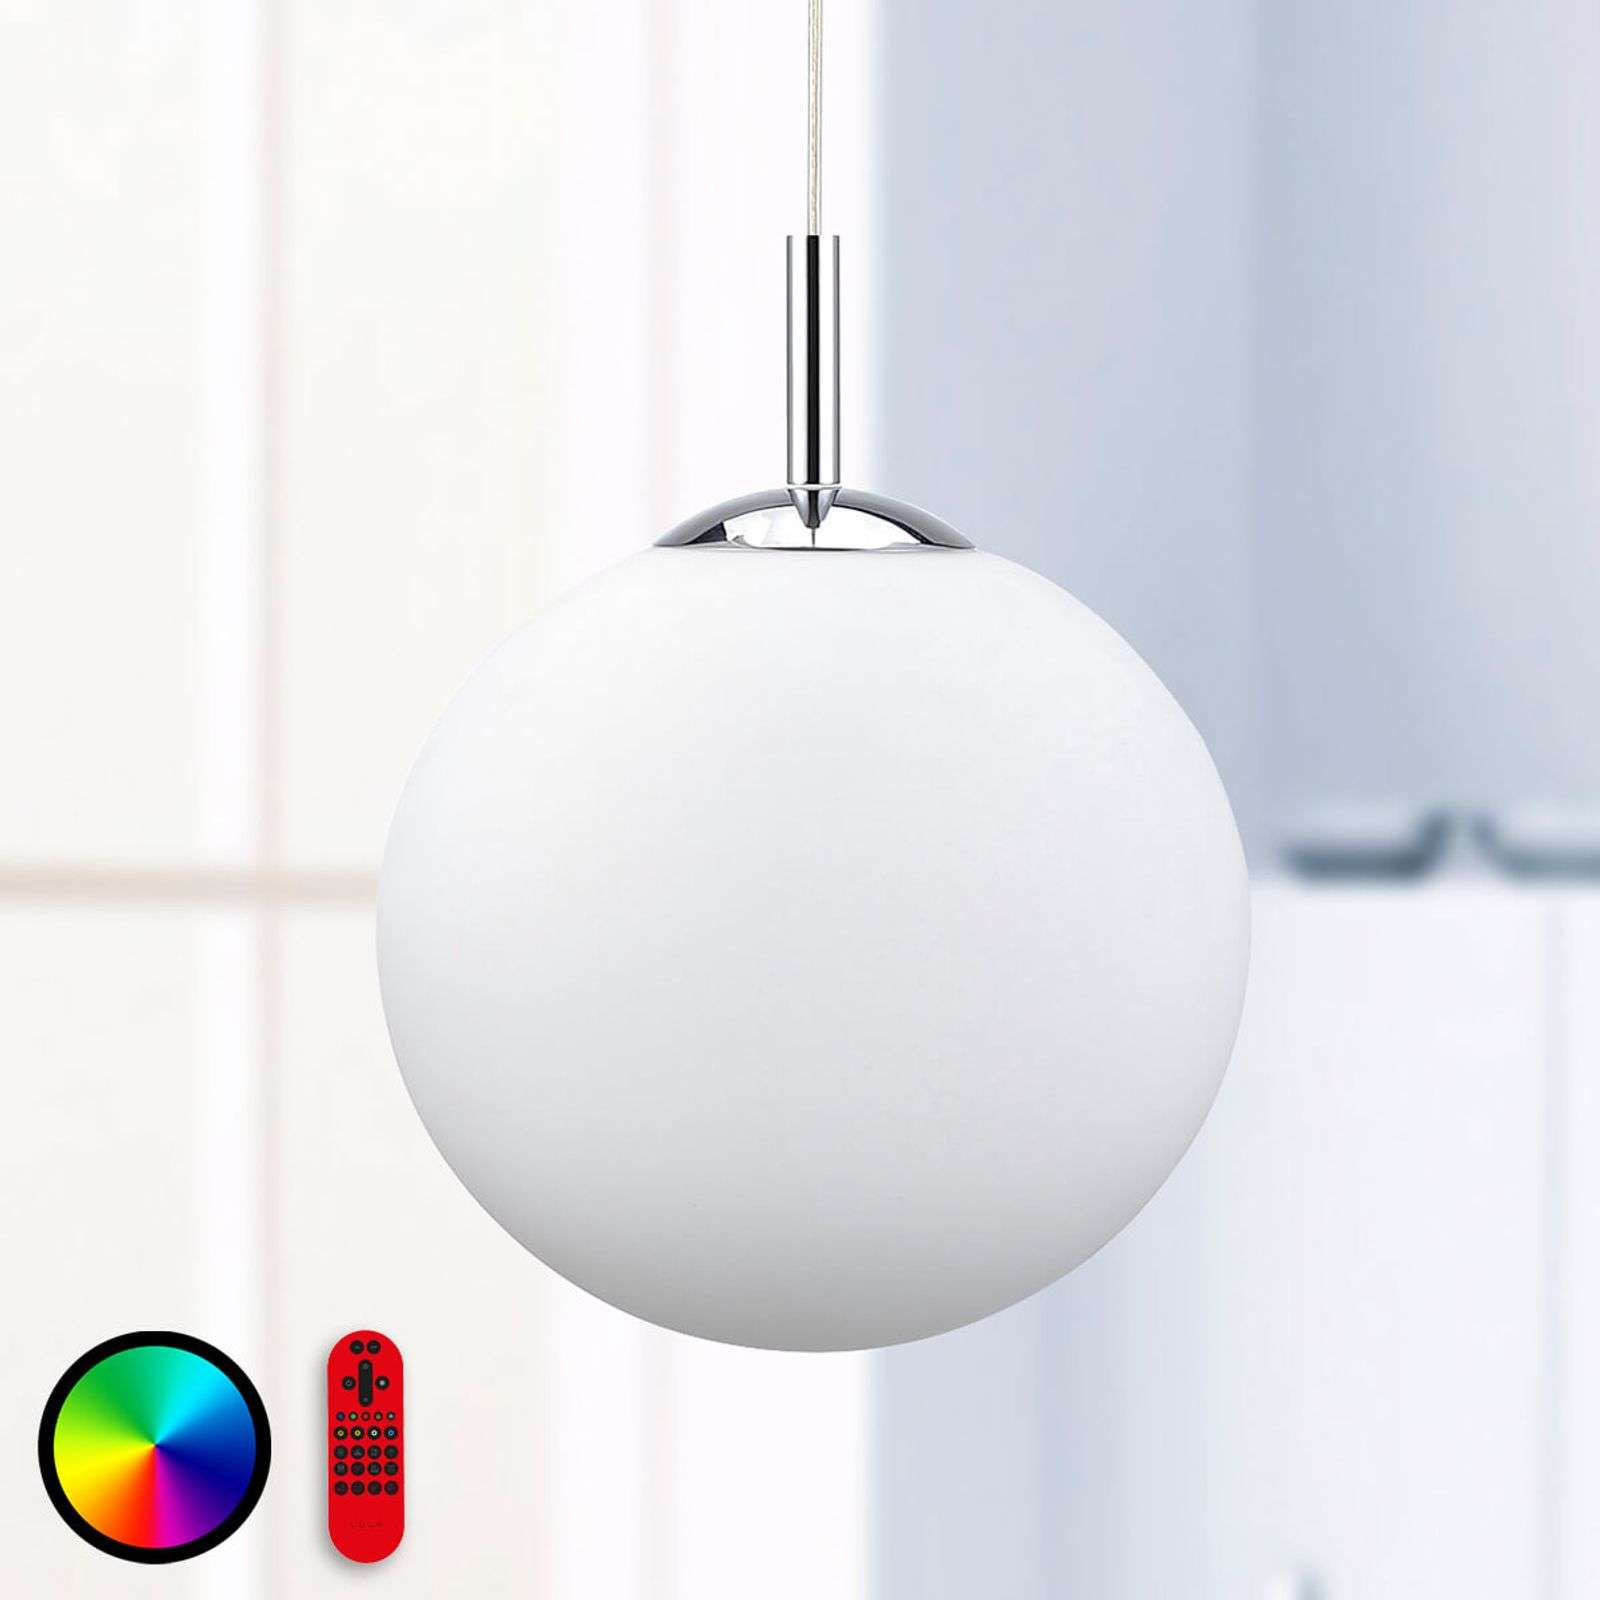 Élégante suspension LED RGBW Lola-Bolo Ø 30 cm